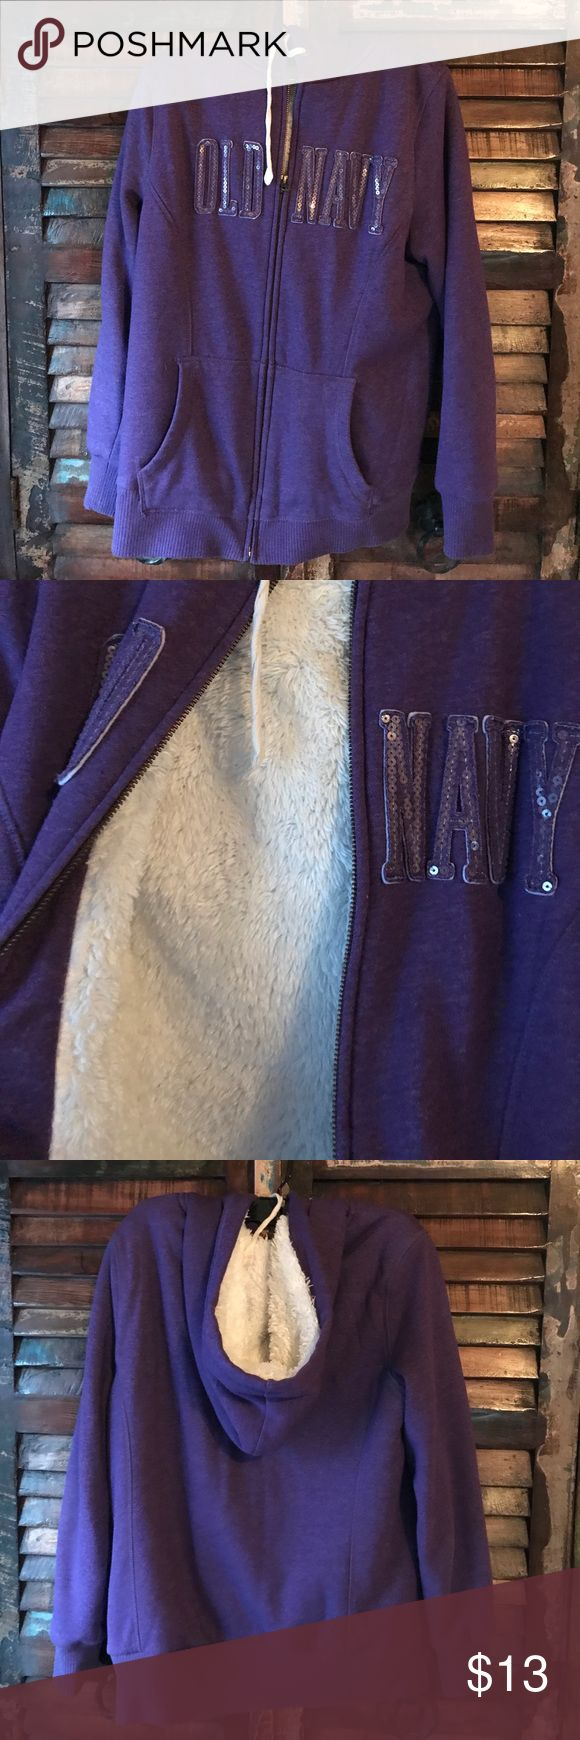 Old navy purple zip up hoodie! Old navy purple zip up hoodie!  Worn and washed few times but still in great condition. Size M. The inside is a white faux fur material and it is also inside the hood. Zips up the front and the old navy logo is embellished with small sequins. Super comfy! Smoke free home. Old Navy Other